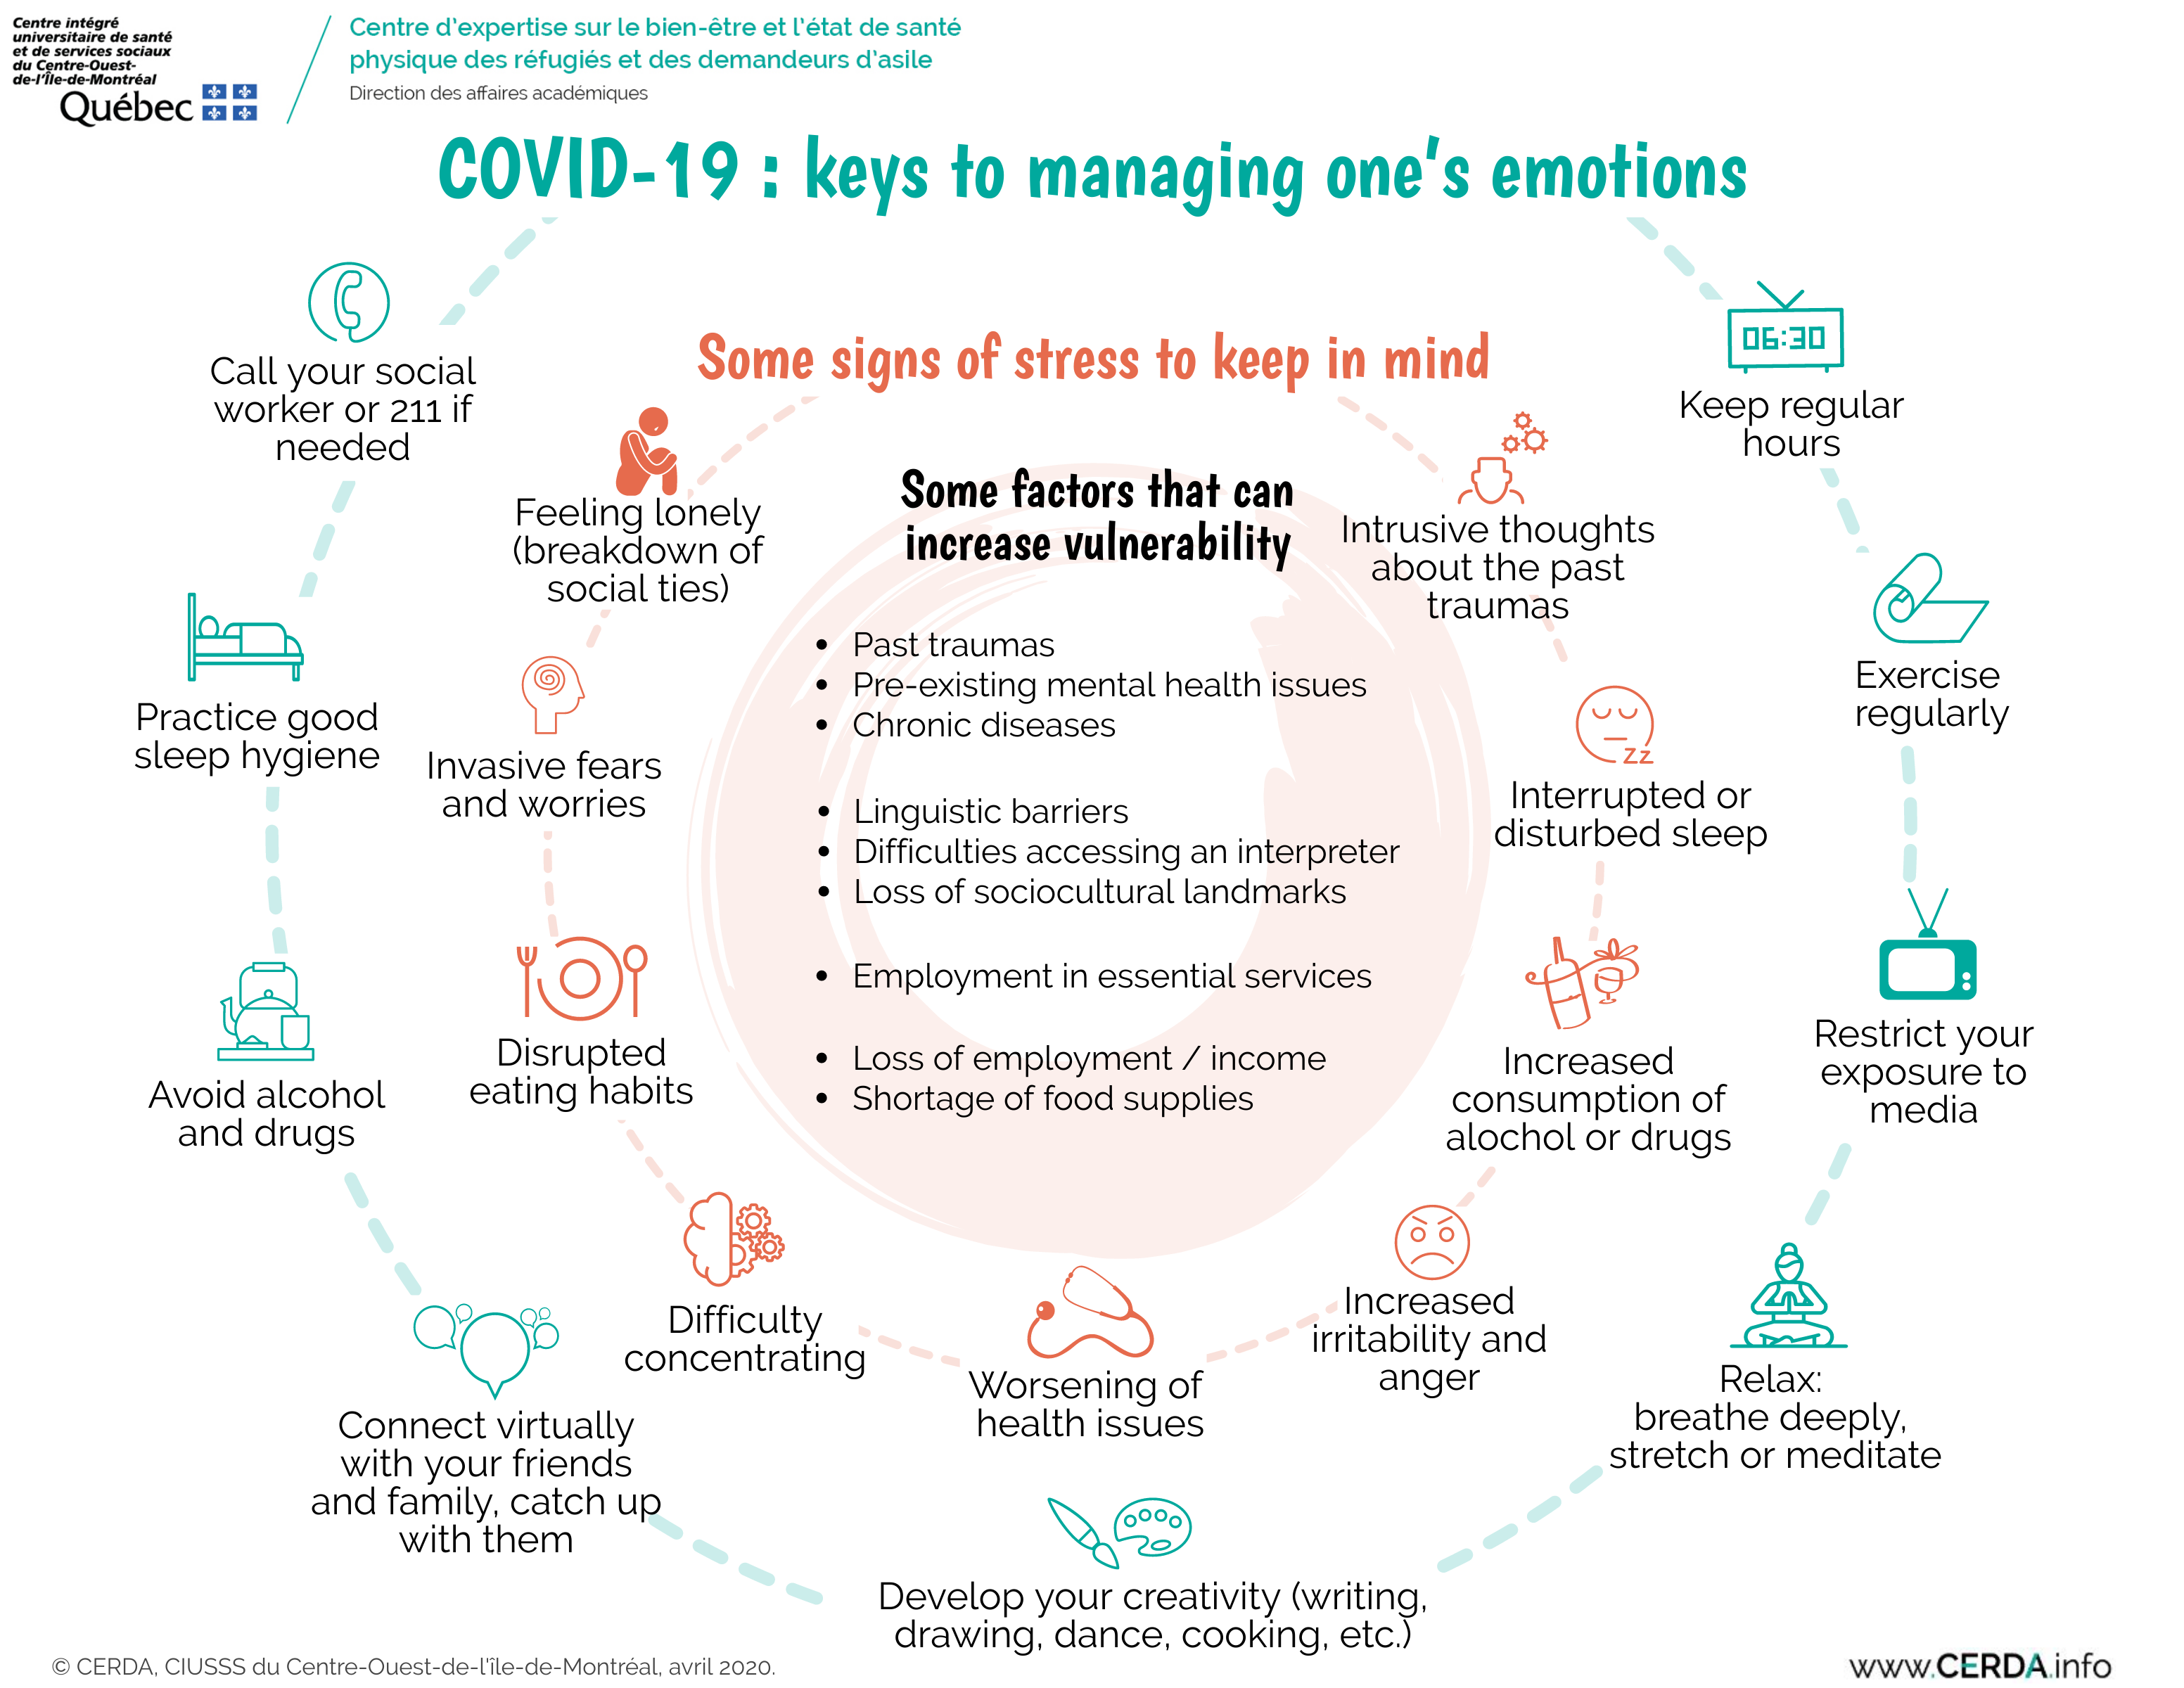 INFO - COVID-19 : keys to managing one's emotions - English